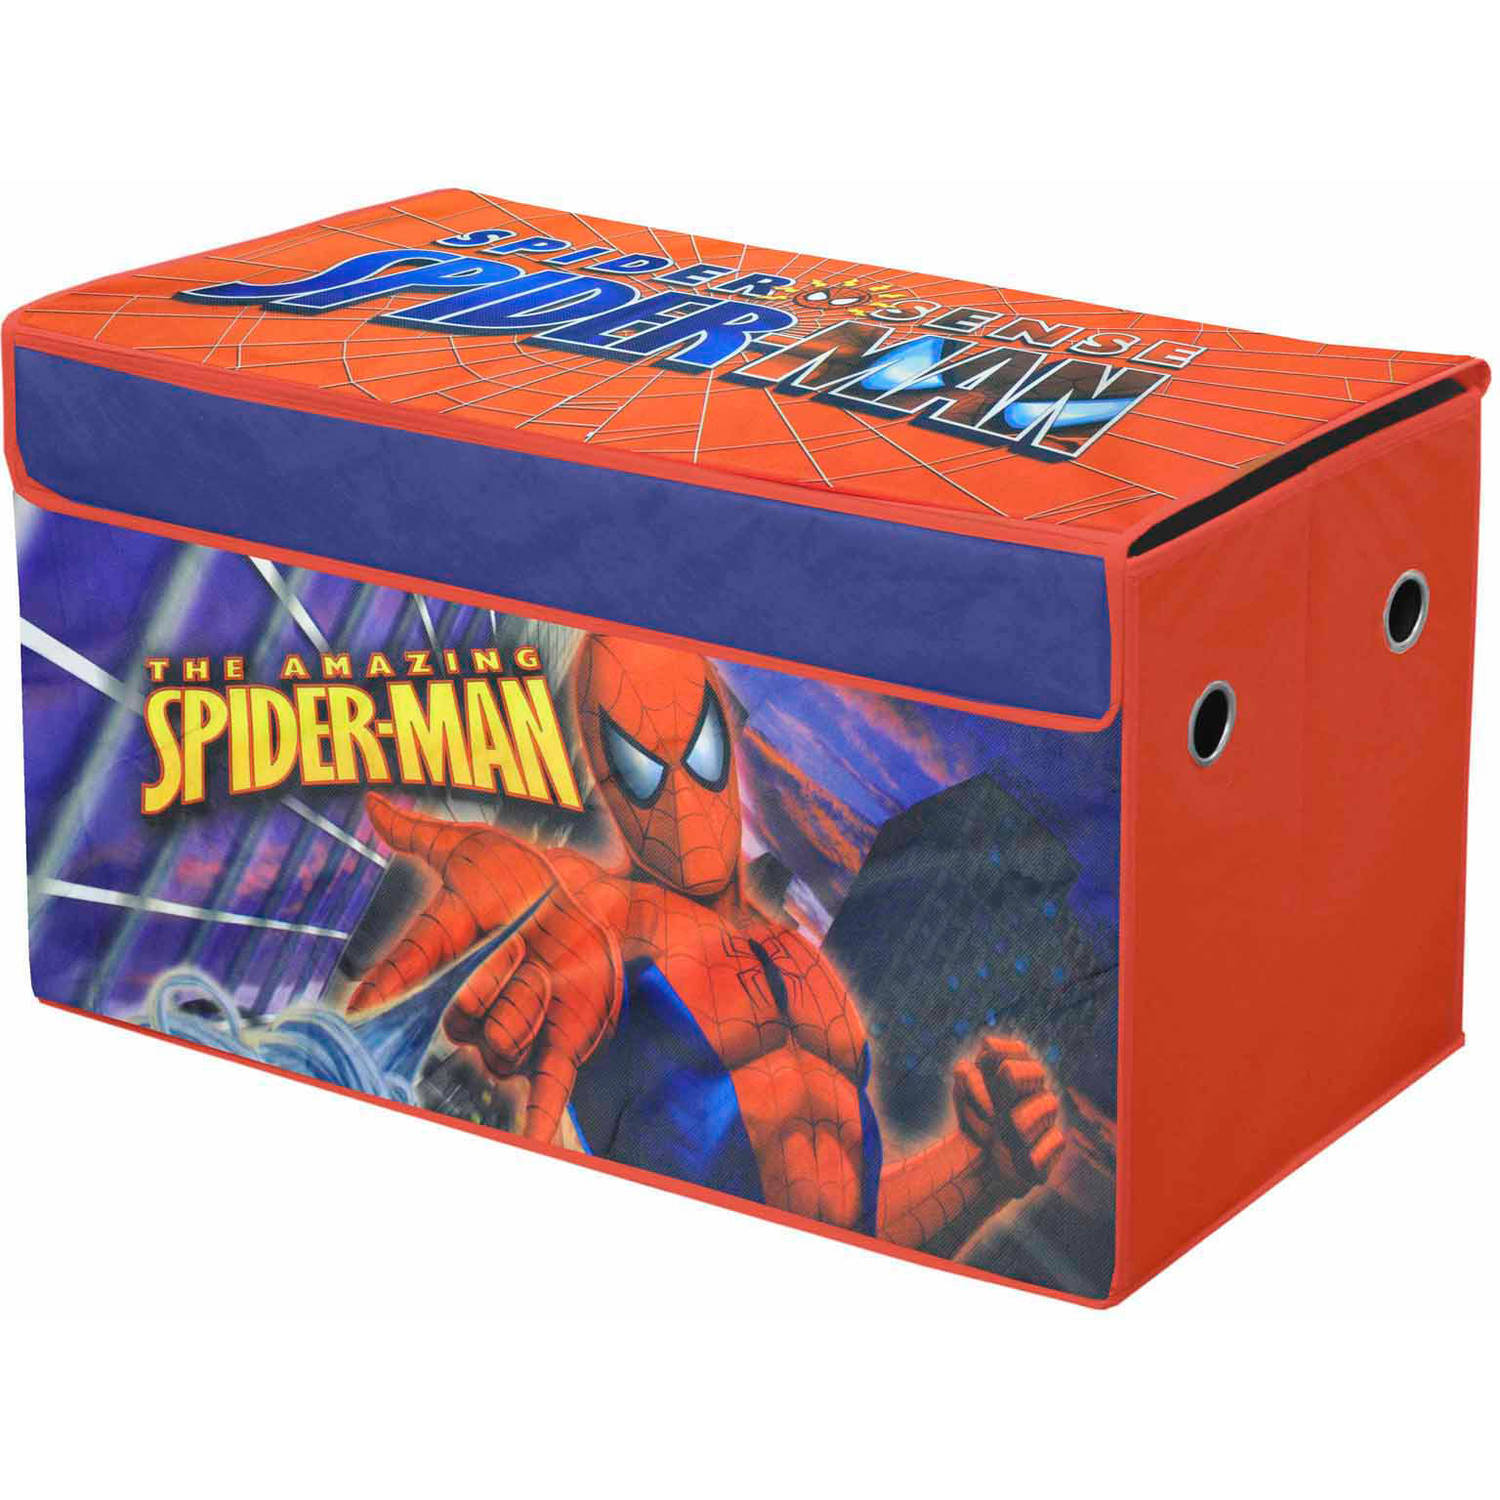 Marvel Spiderman Oversized Soft Collapsible Storage Toy Trunk